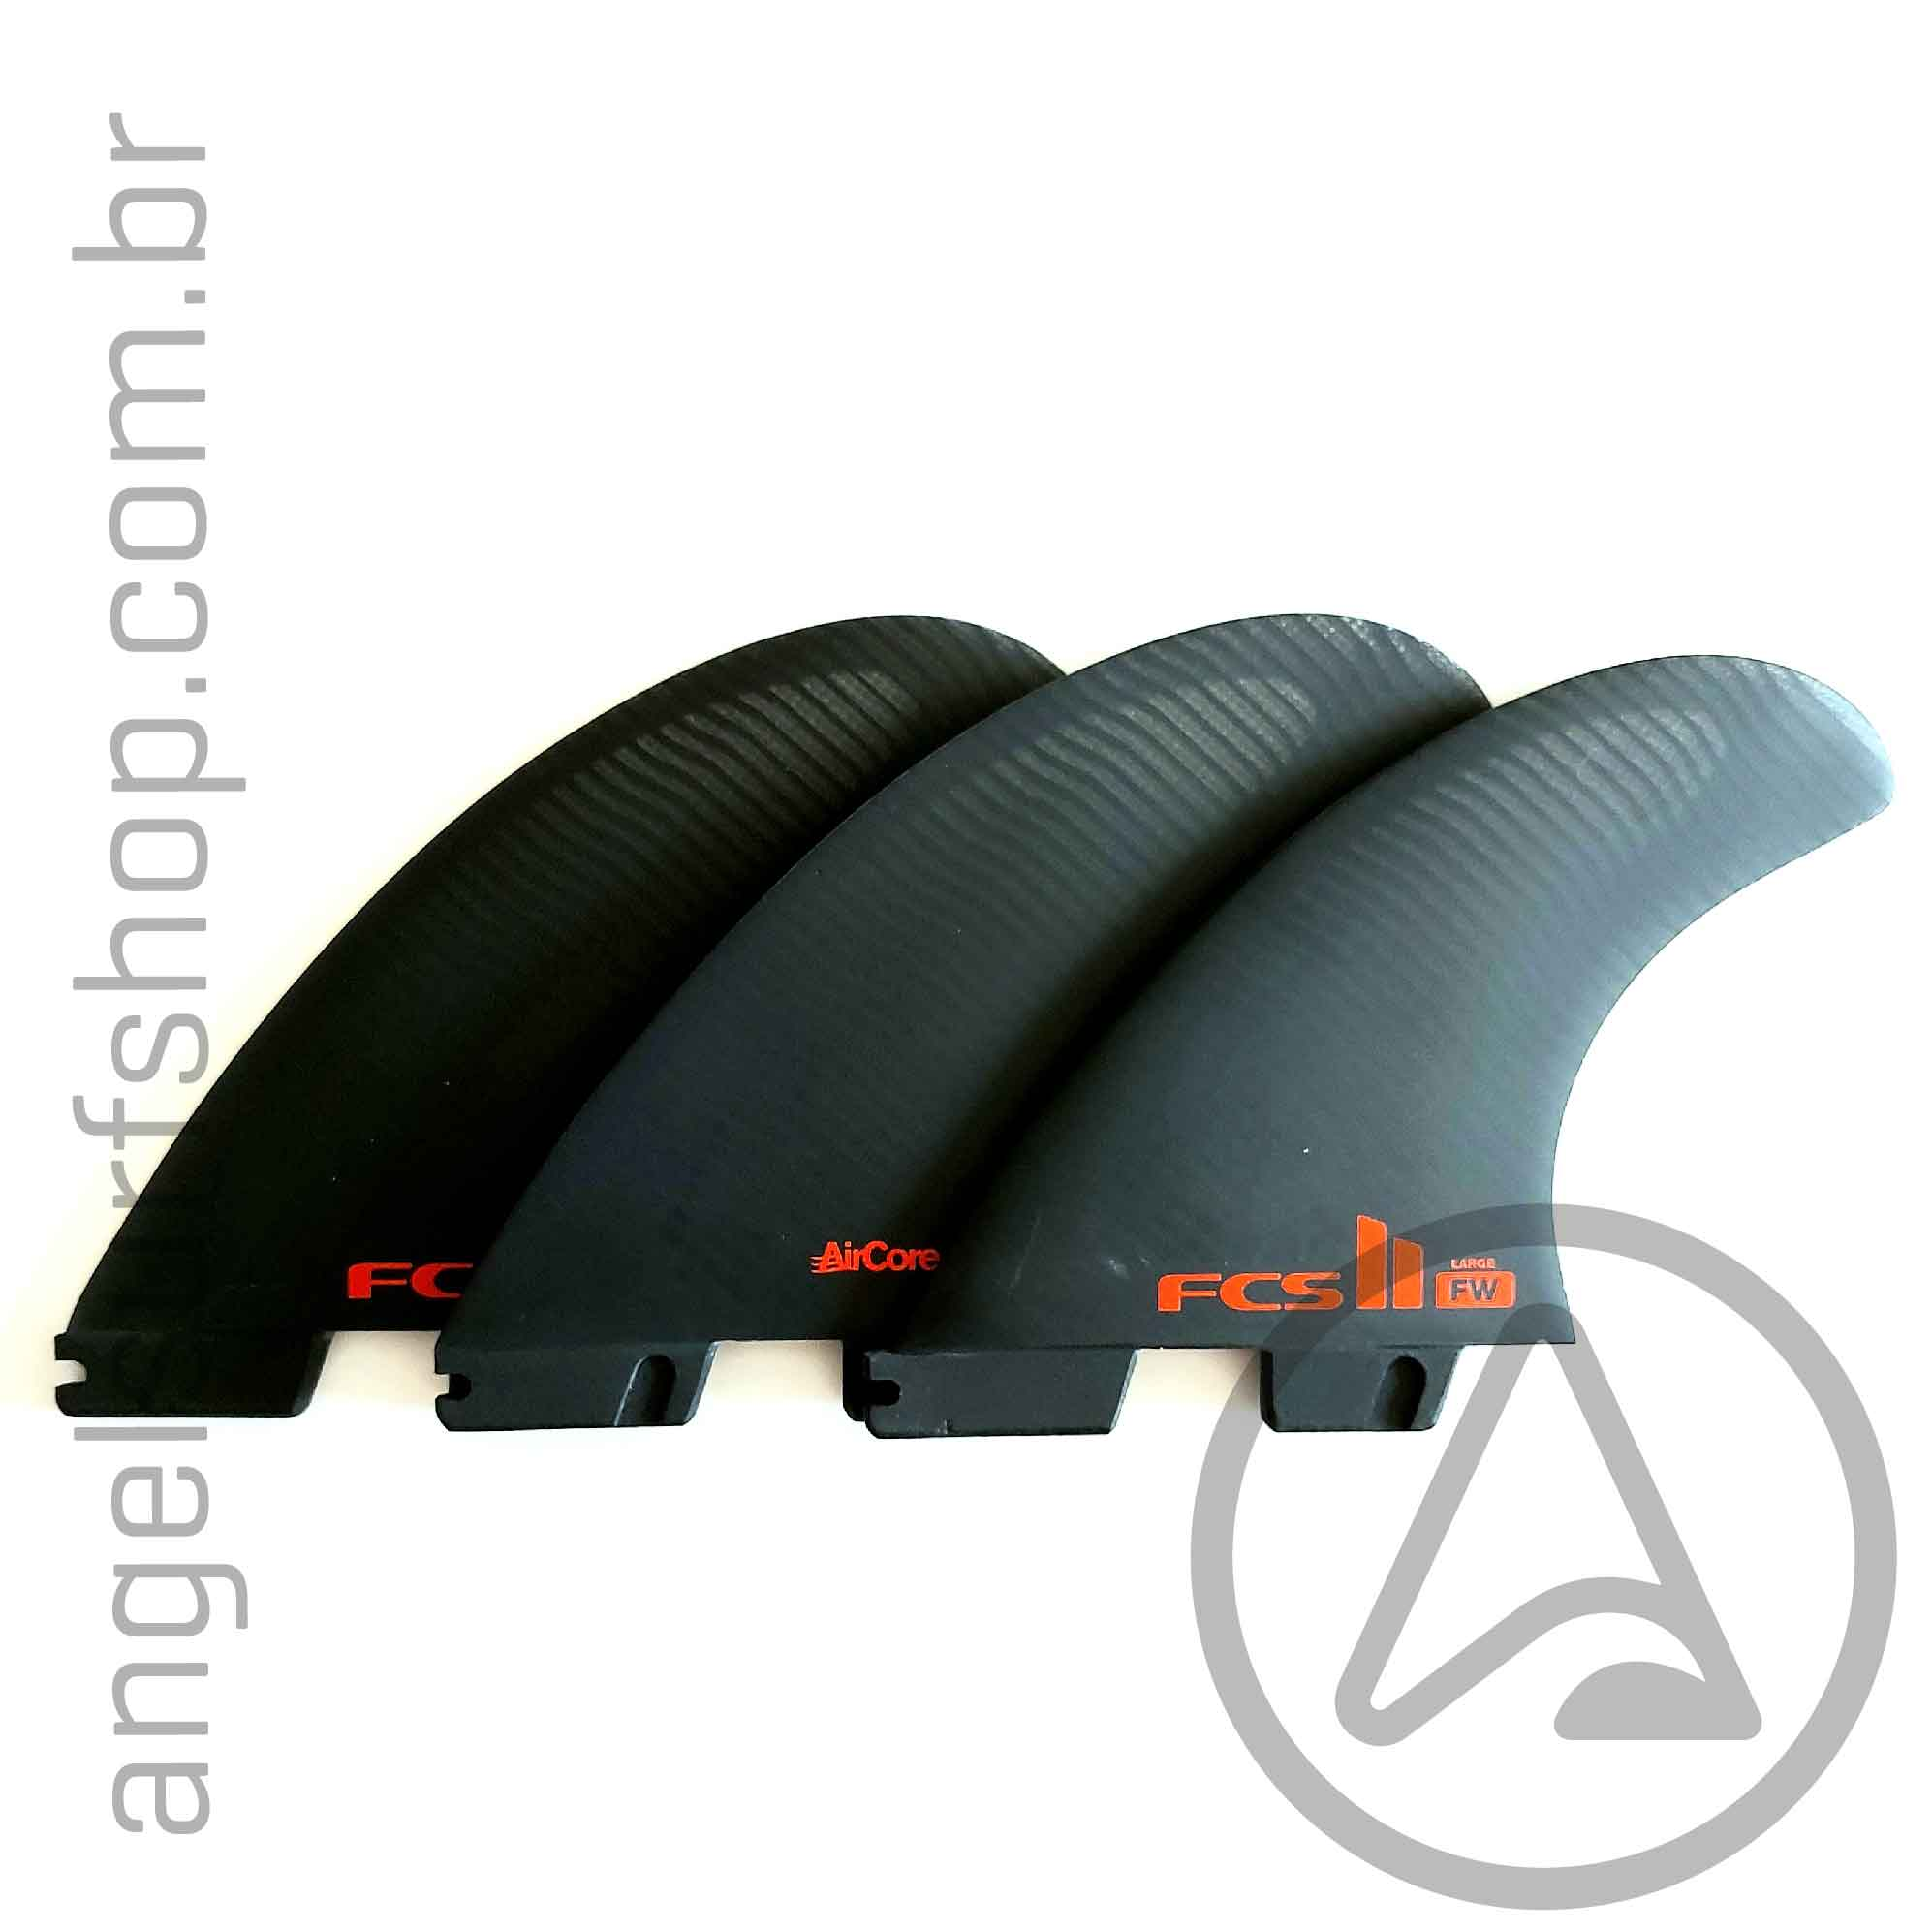 Quilha FCS II FIREWIRE FW Performer AIRCORE